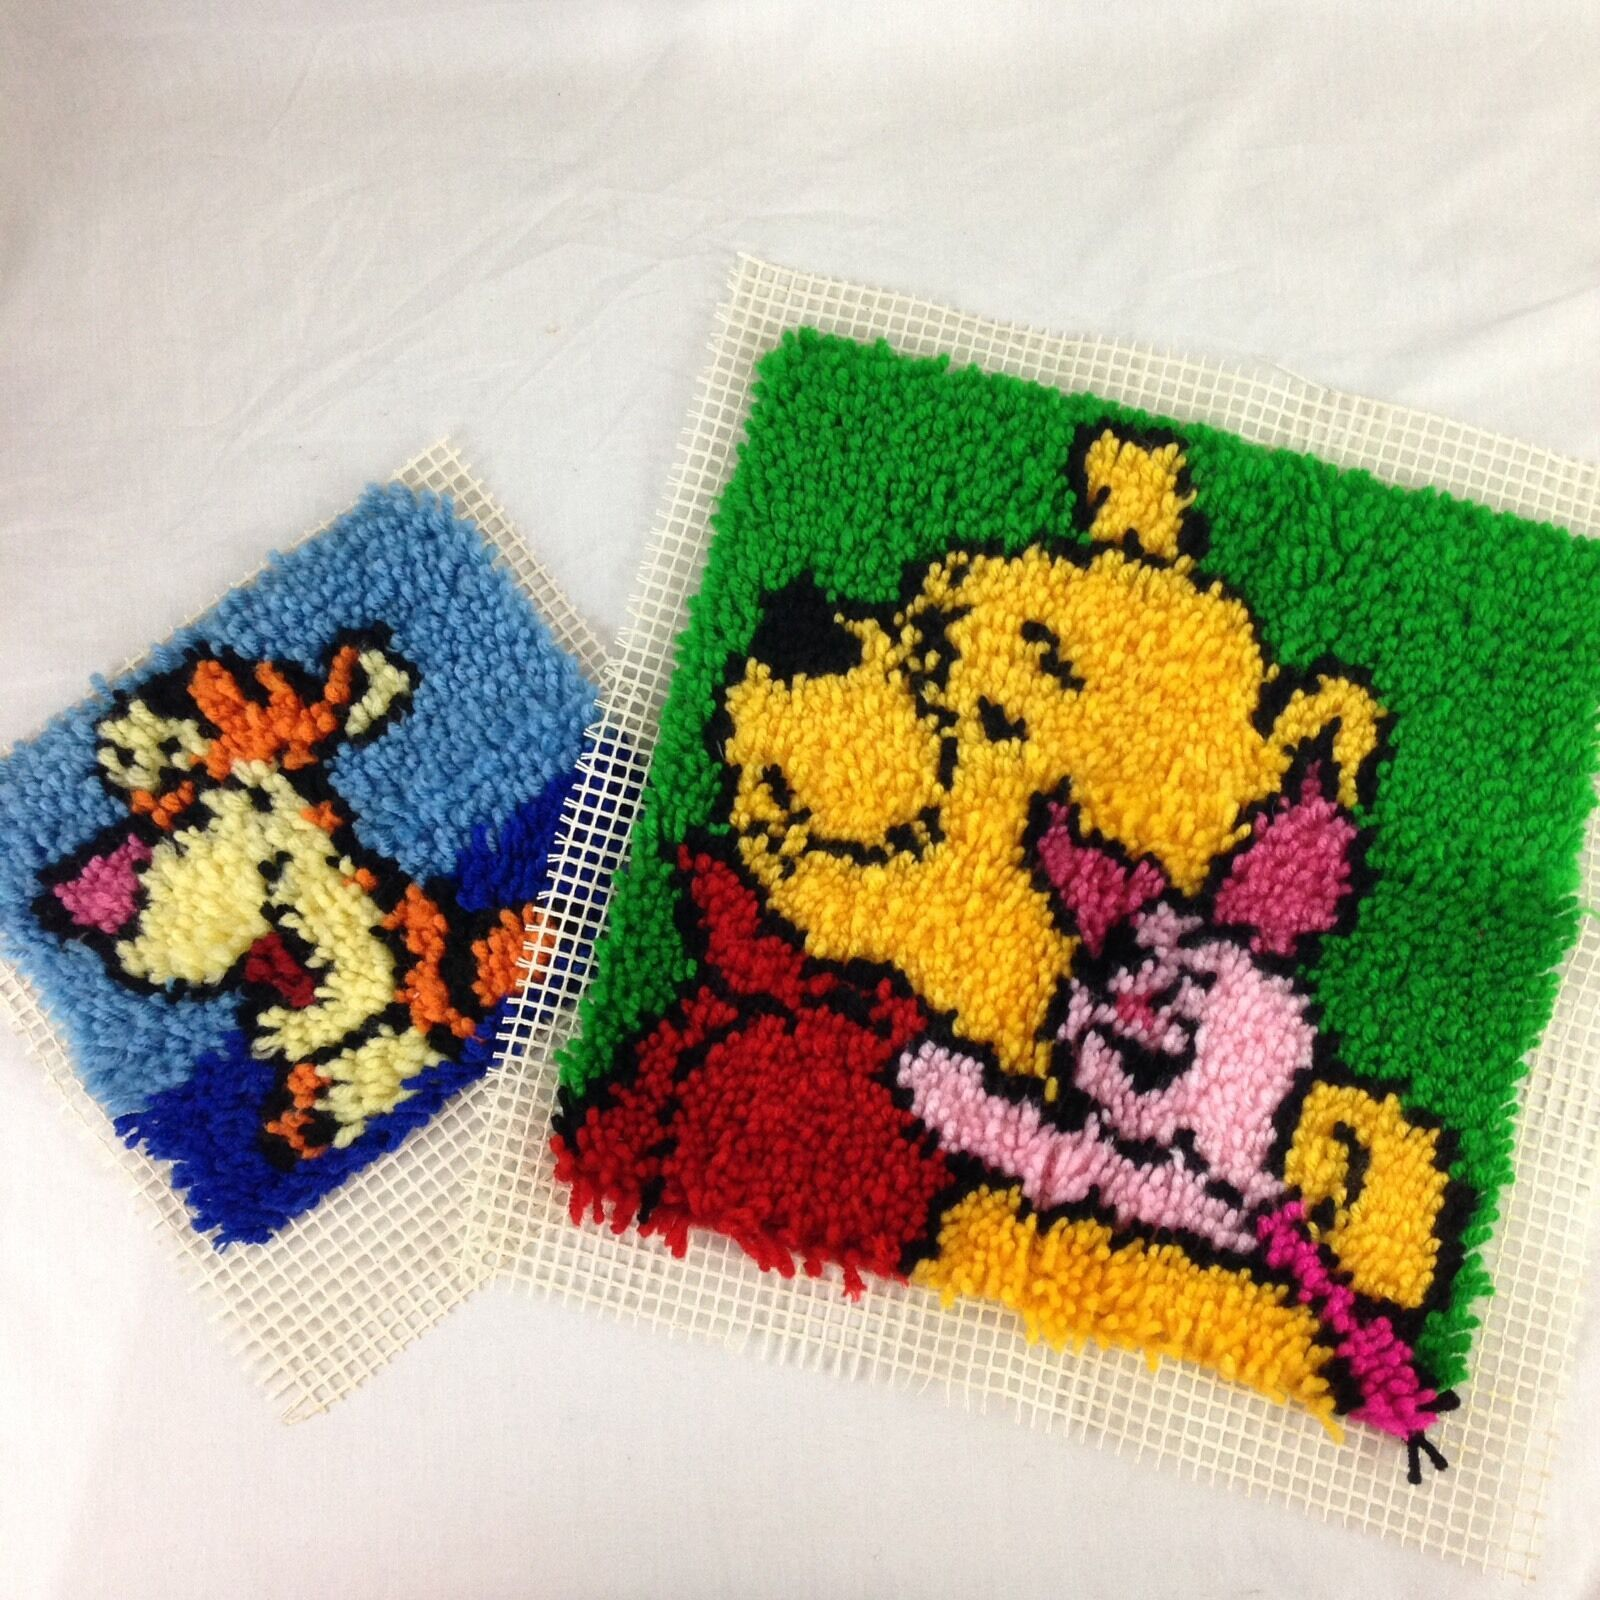 IN CHINA 50 X 50 CM WINNIE THE POOH ROUND LATCH HOOK RUG KIT